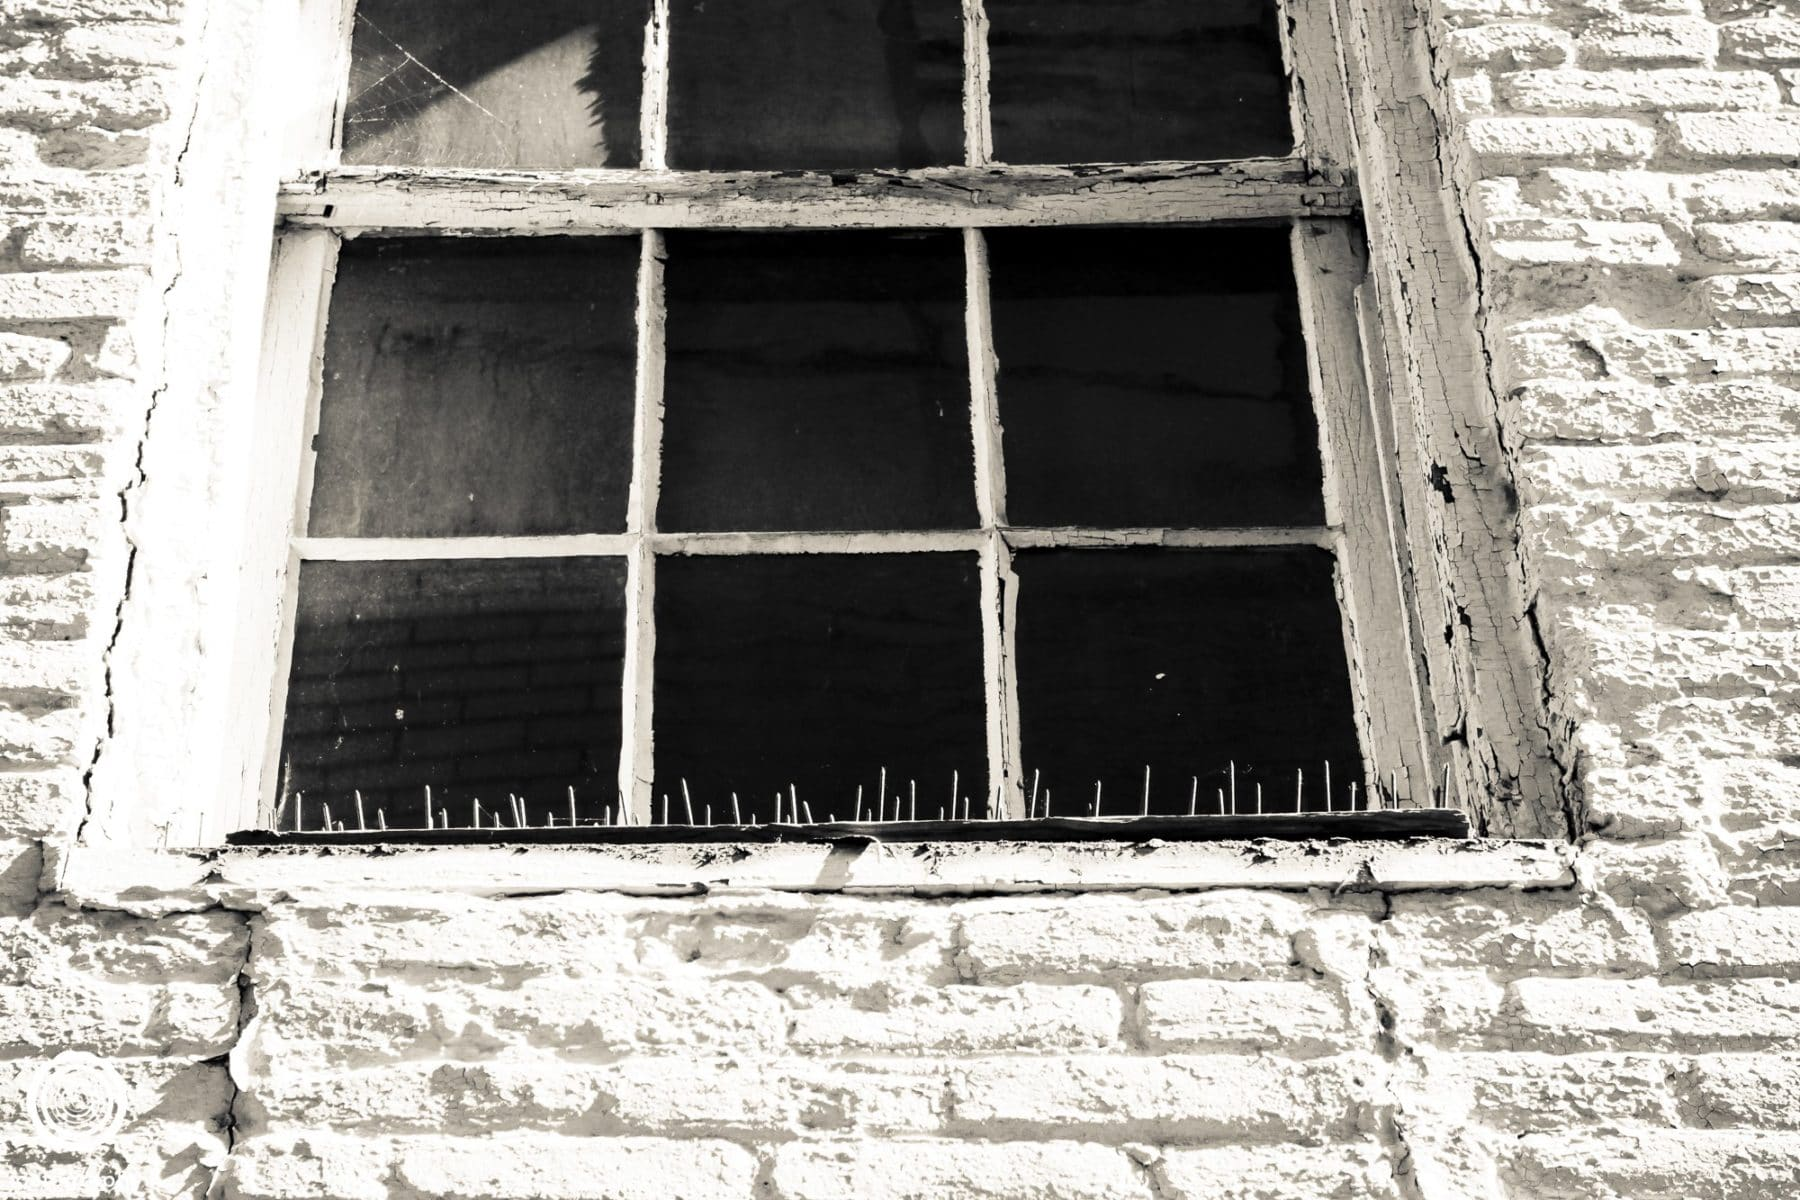 Alleyways-Architecture-Photography-Columbus-Indiana-8